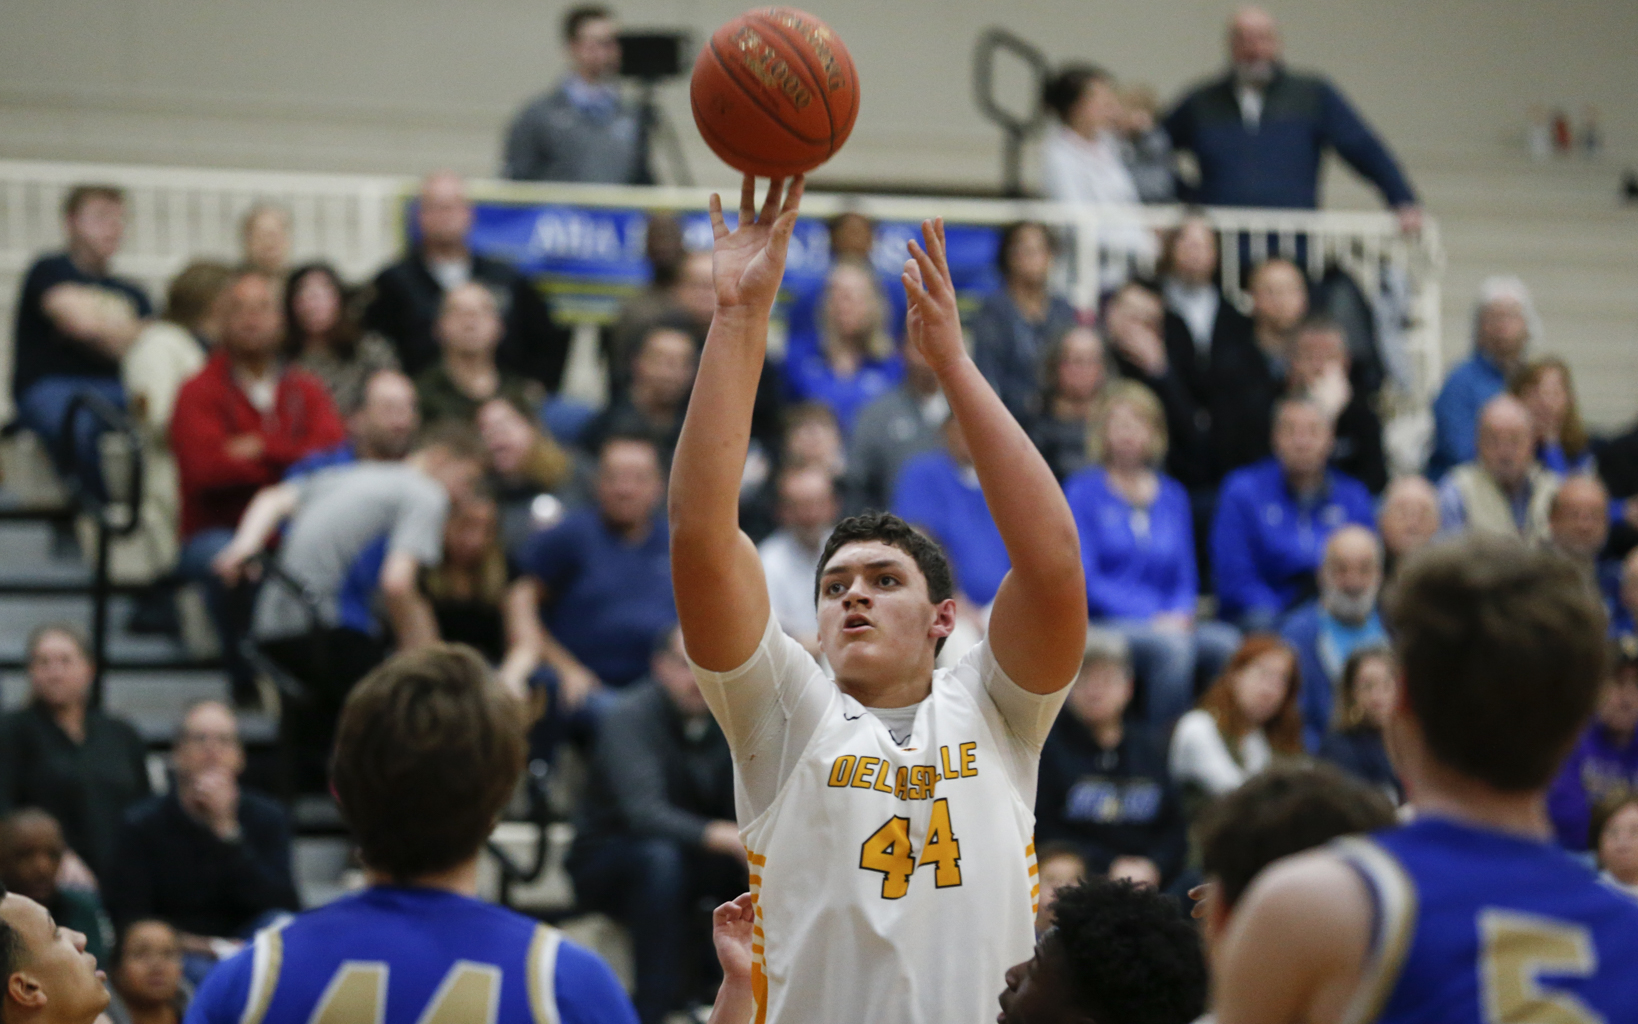 DeLaSalle's Jalen Travis (44) puts up a shot against Holy Angels Friday night. Travis had 12 points in the Islanders' 59-56 victory over the Stars in Richfield. Photo by Jeff Lawler, SportsEngine